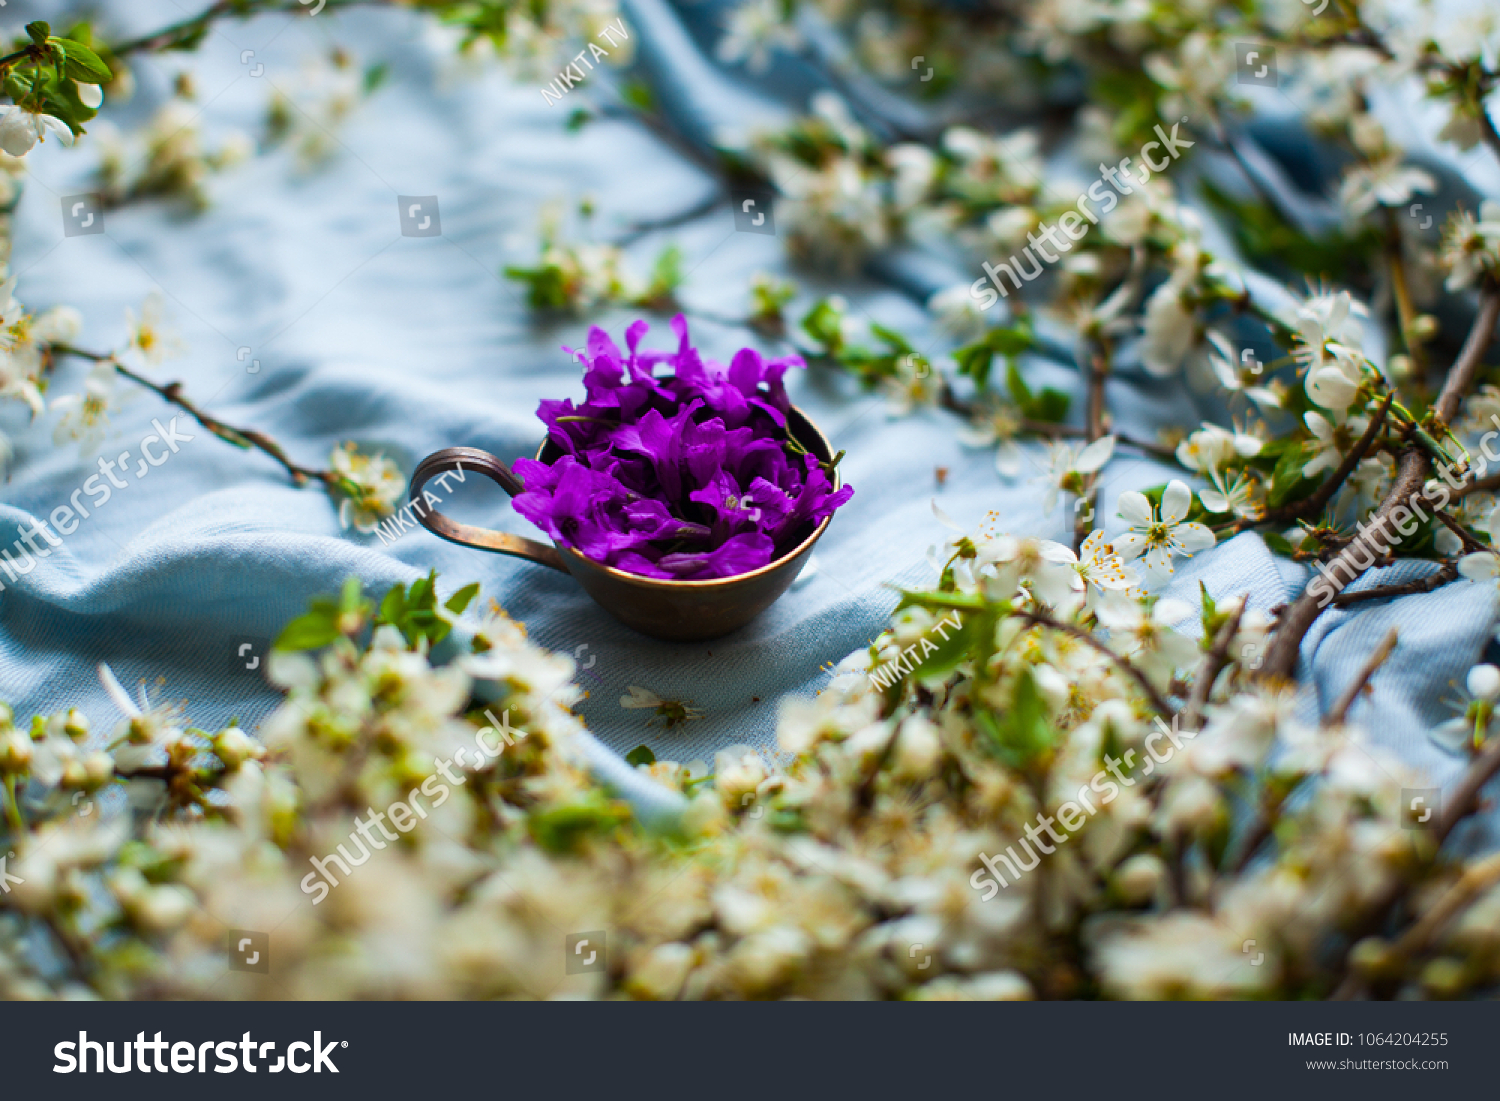 Cup metal cup cup flowers purple stock photo edit now 1064204255 cup with flowers purple flower in metal cup white izmirmasajfo